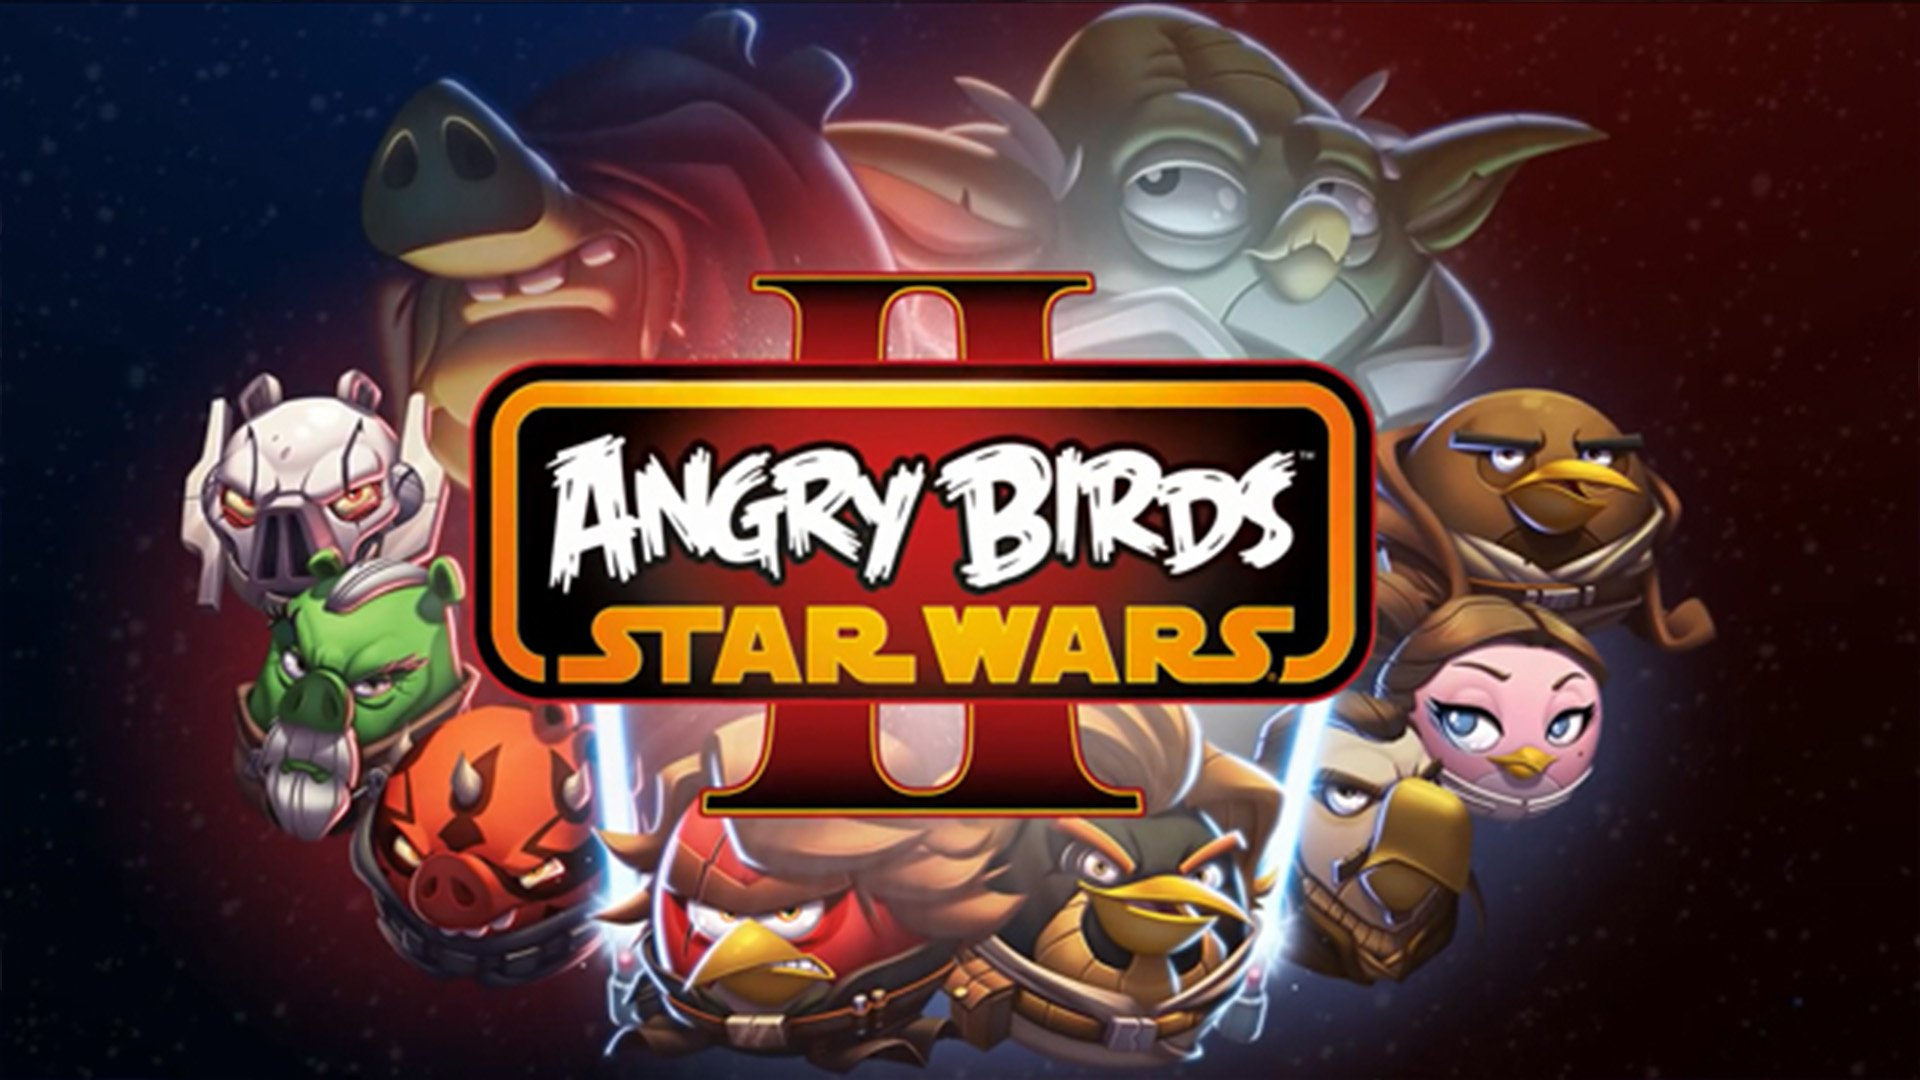 angry birds star wars 2 hd wallpaper background image